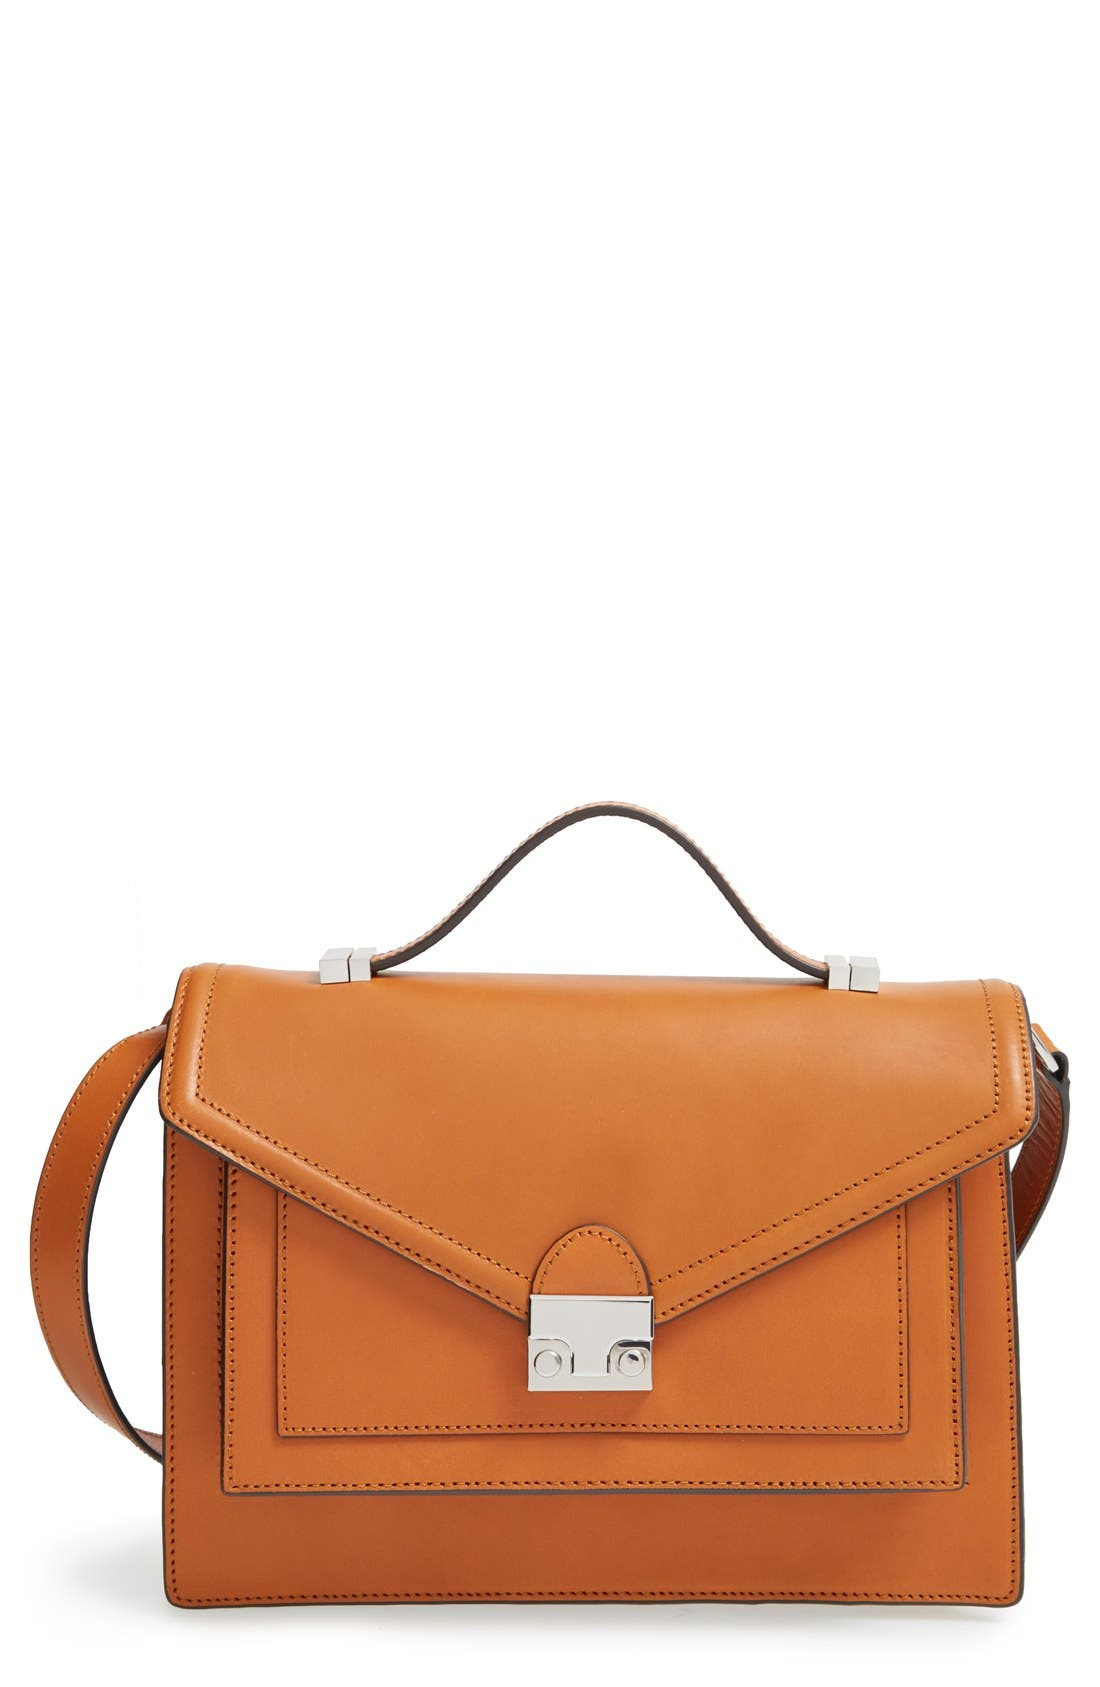 Loeffler Randall 'Rider' Convertible Leather Satchel